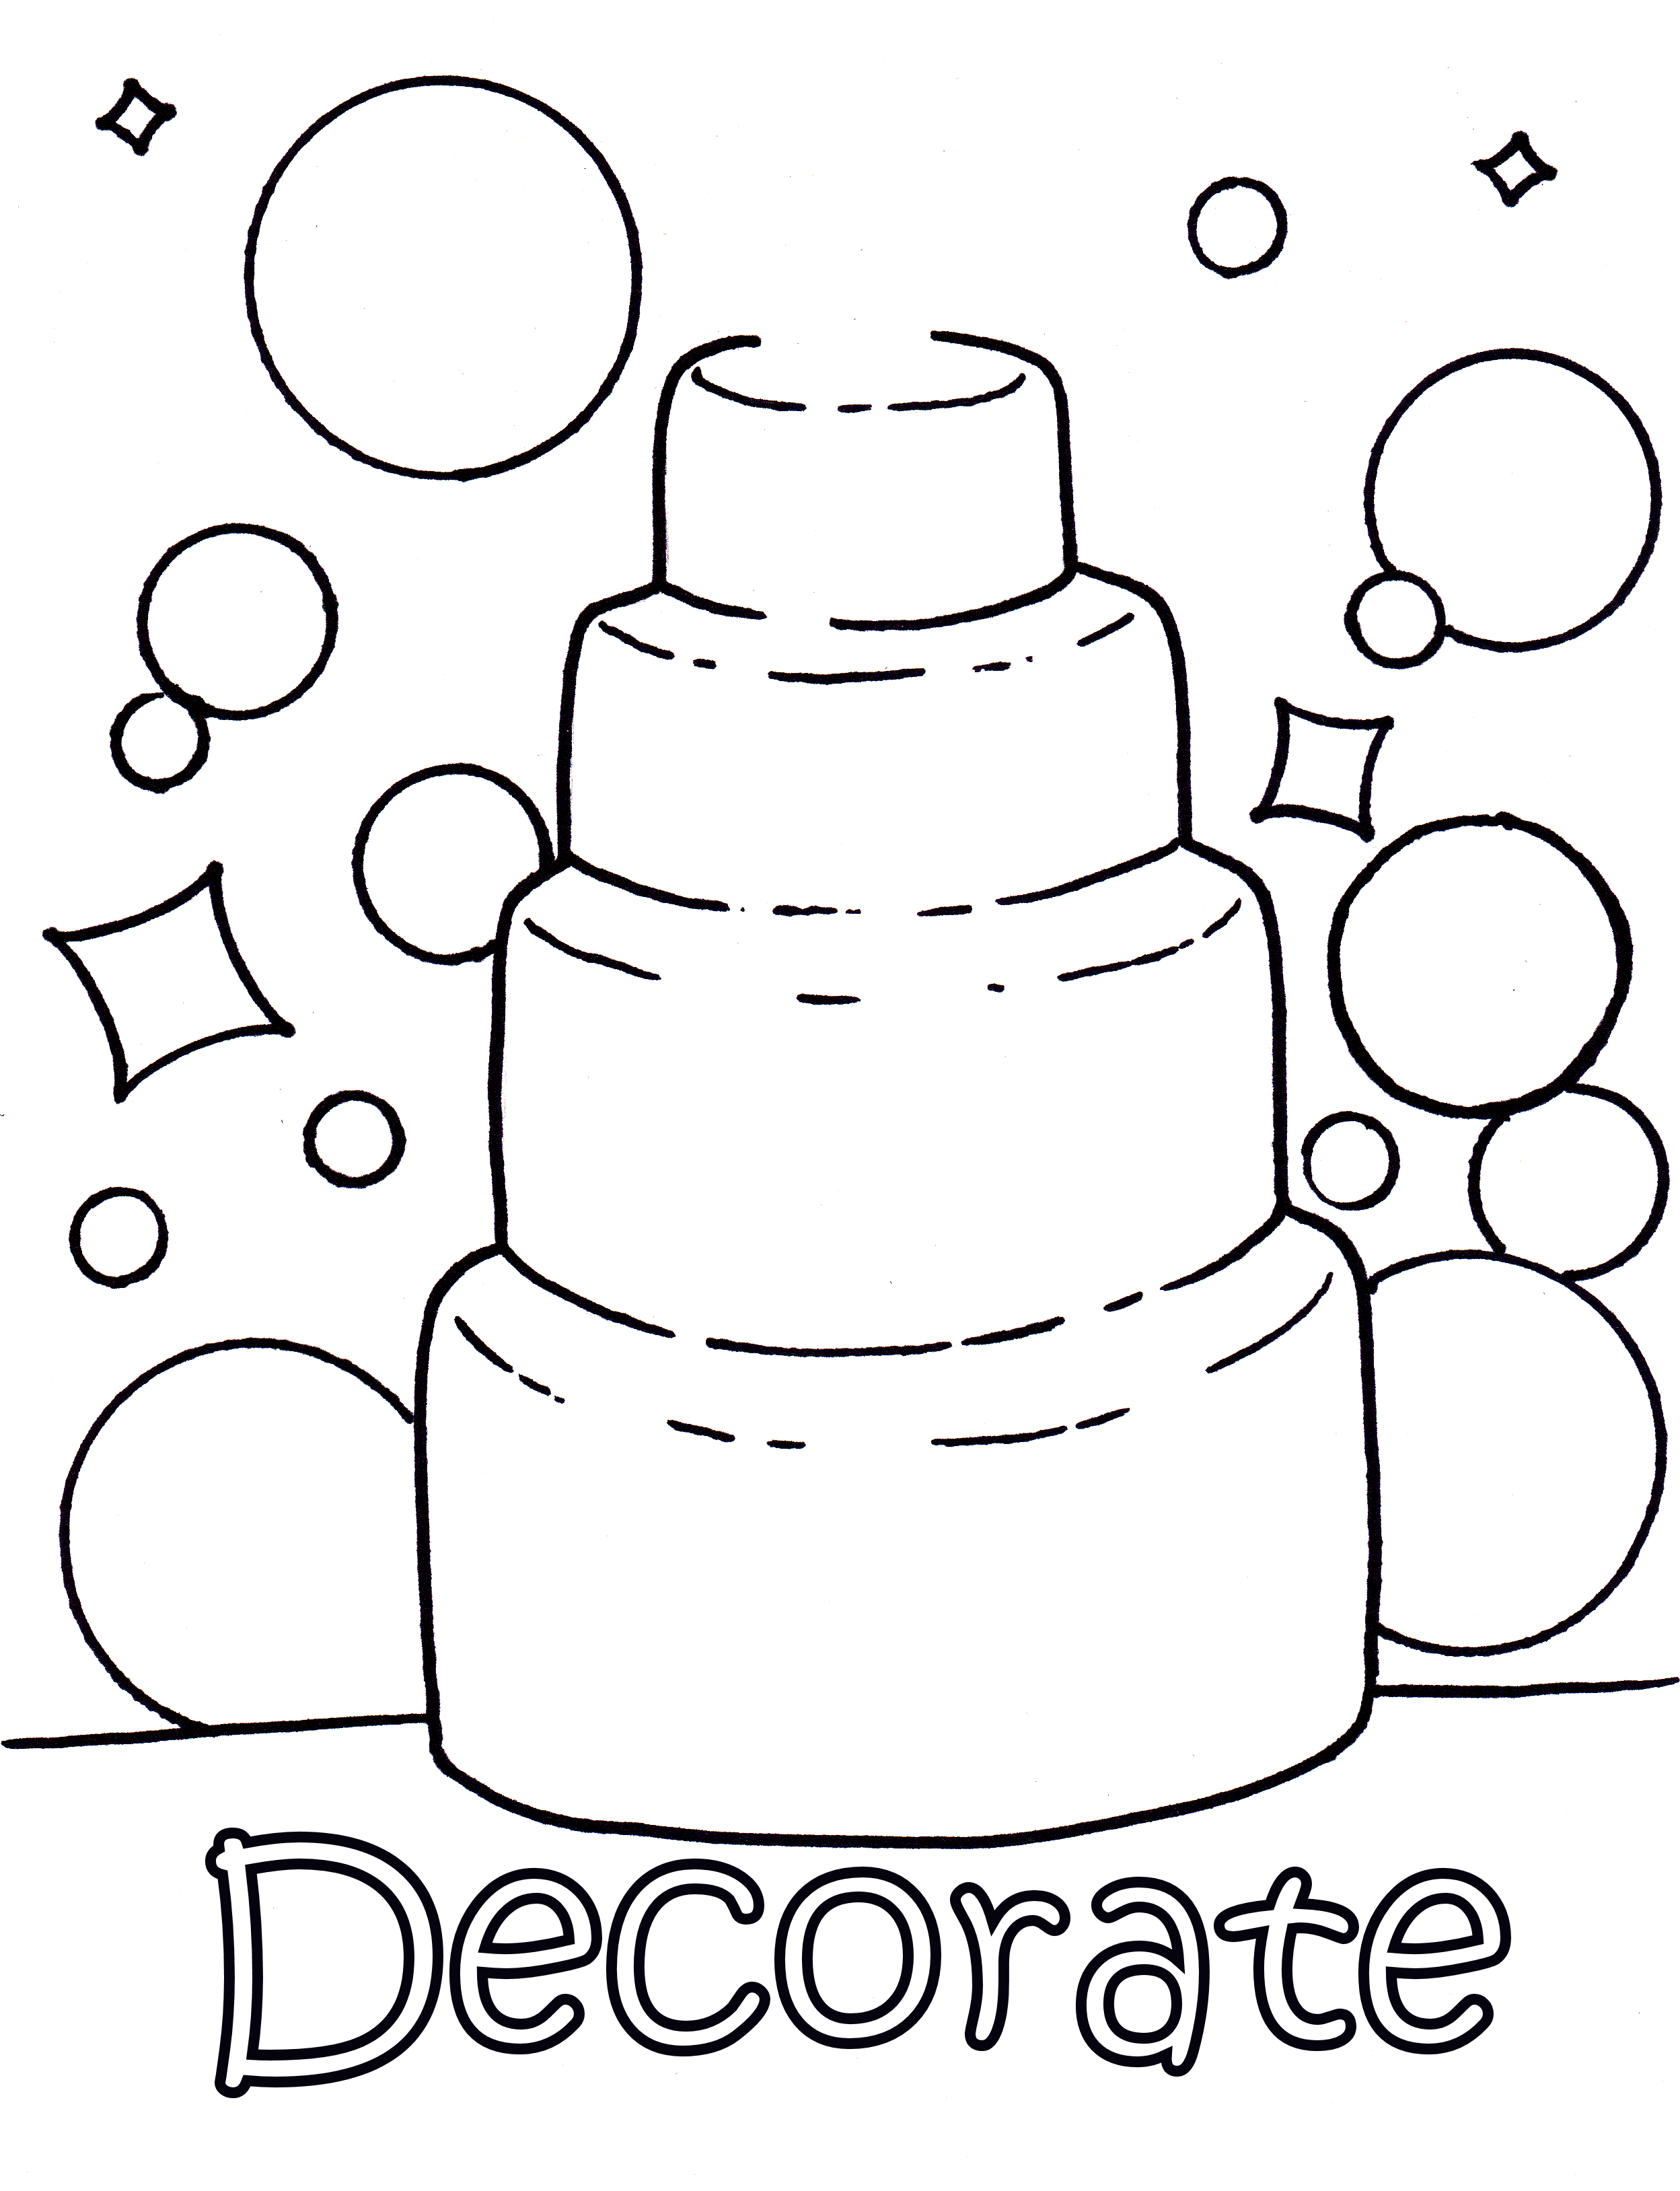 Decorate Your Own Wedding Cake Colouring Page